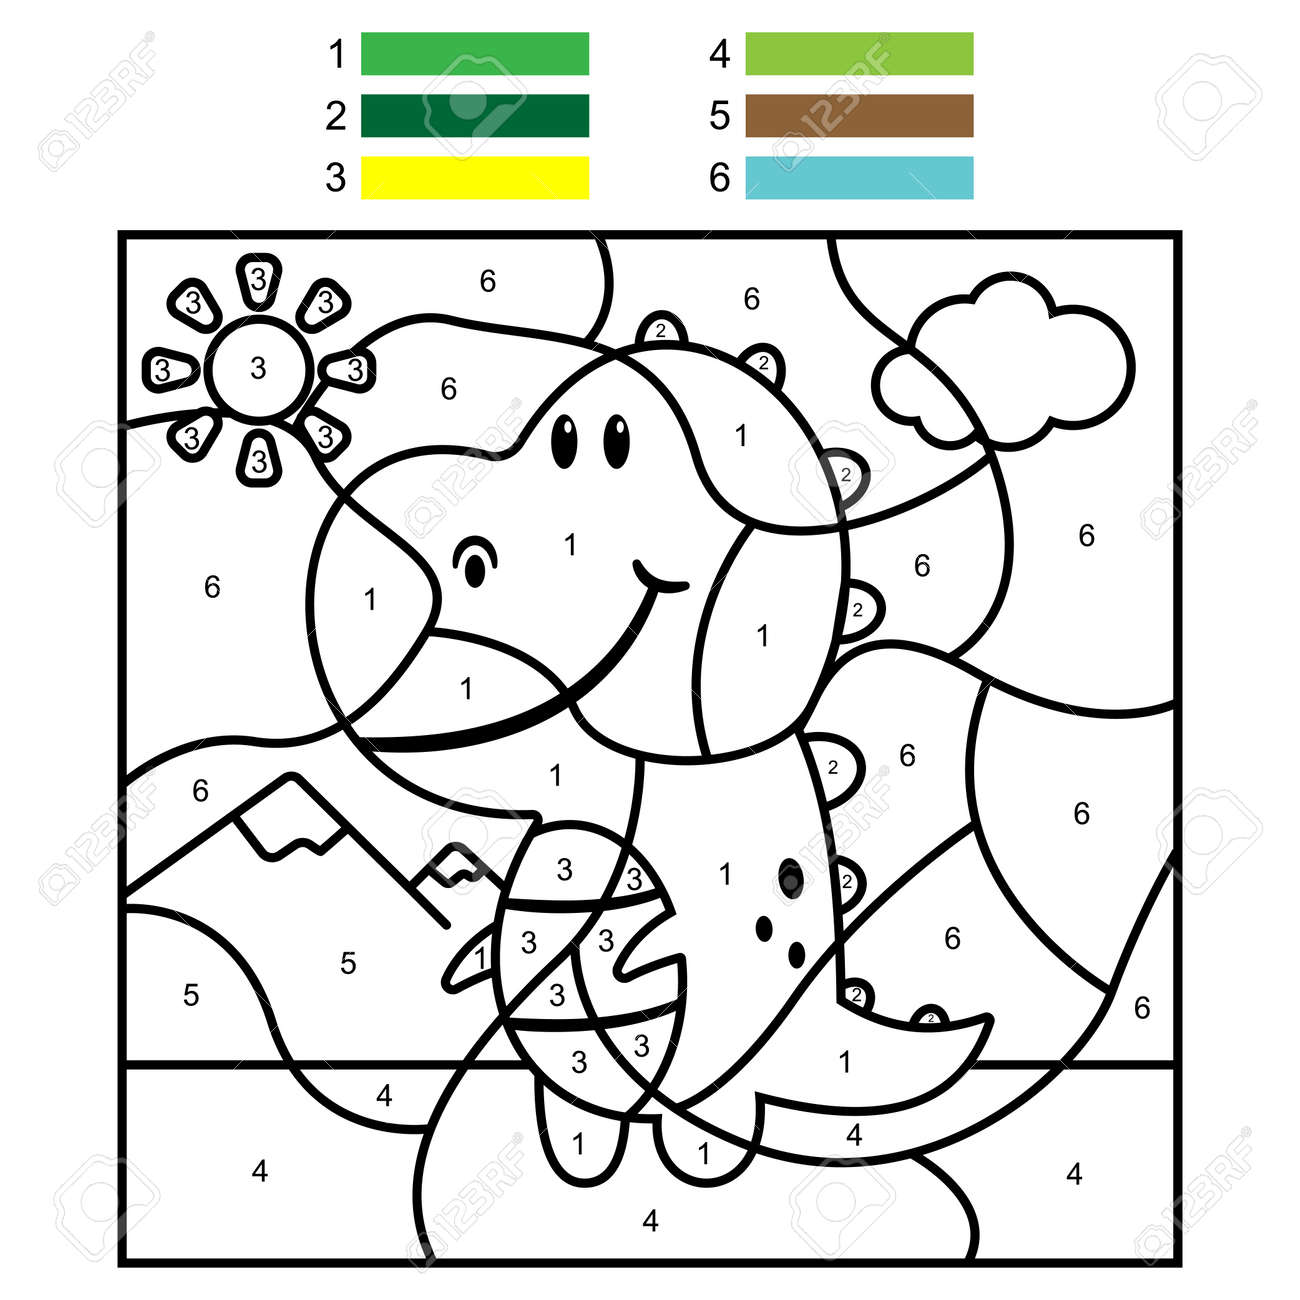 Coloring by numbers with cute dinosaur. Vector cartoon illustration for kids. - 170502727